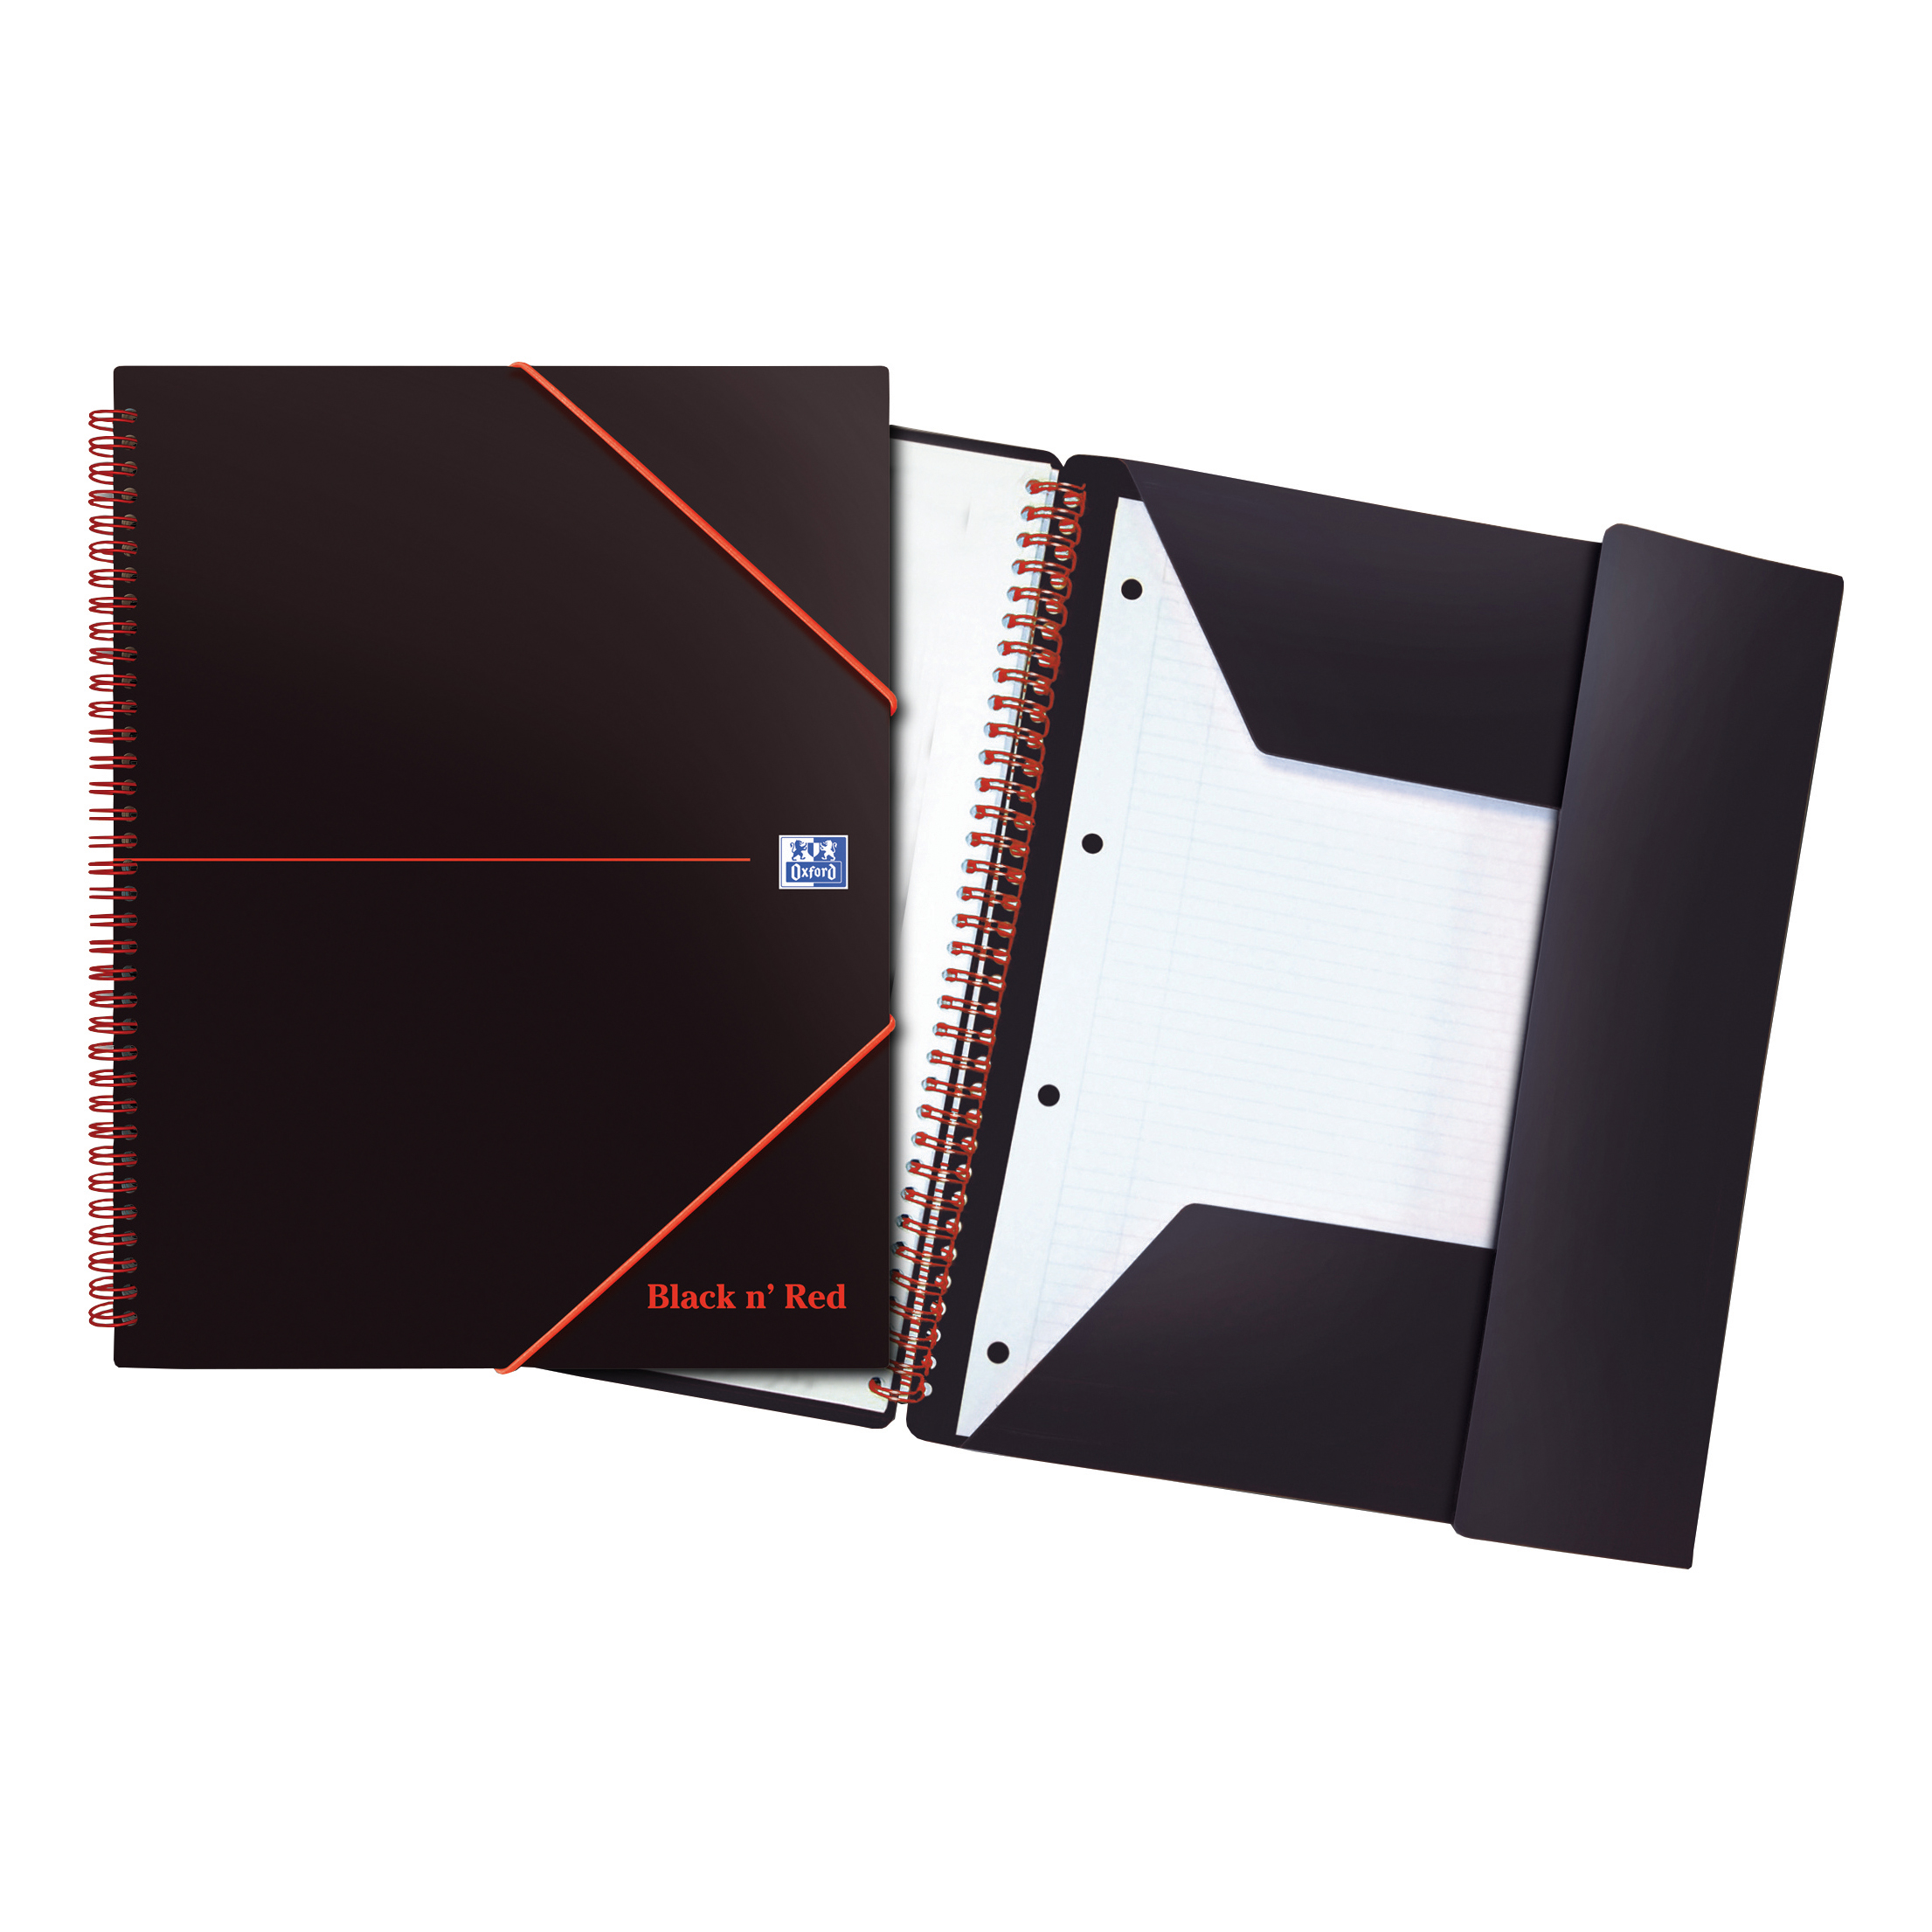 Spiral Note Books Black n Red Meeting Bk Poly Wbnd 90gsm Ruled Margin Perf Punched 4 Holes 160pp A4+ Ref 100104323 Pack 5